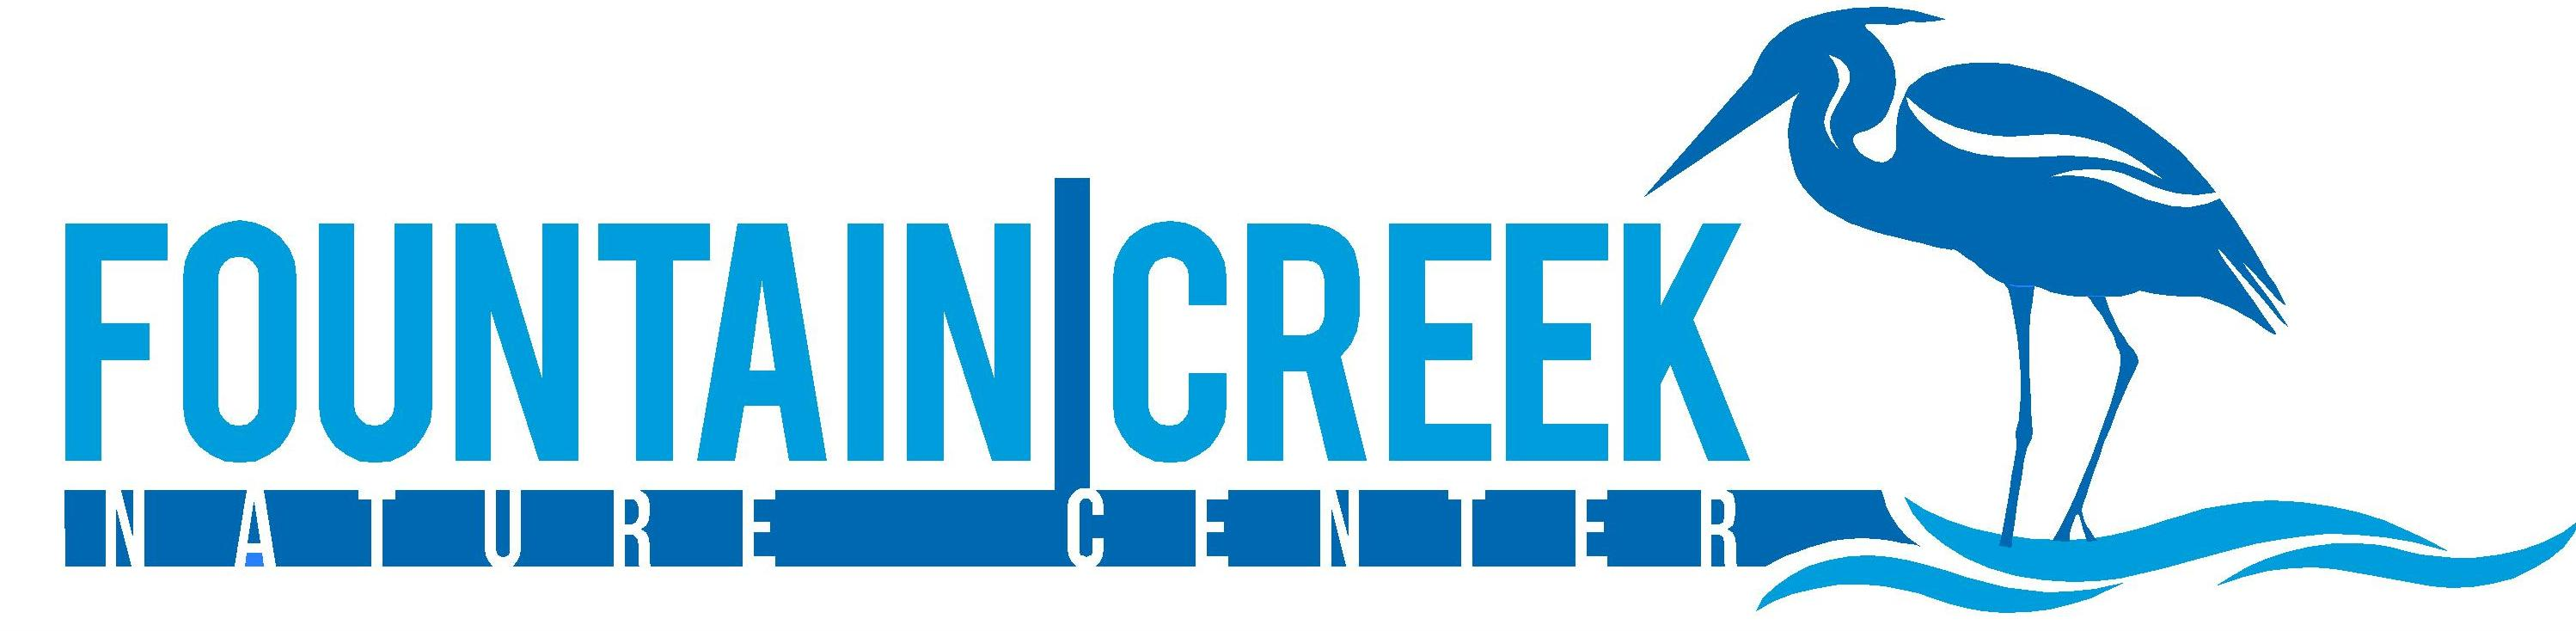 Fountain Creek Logo